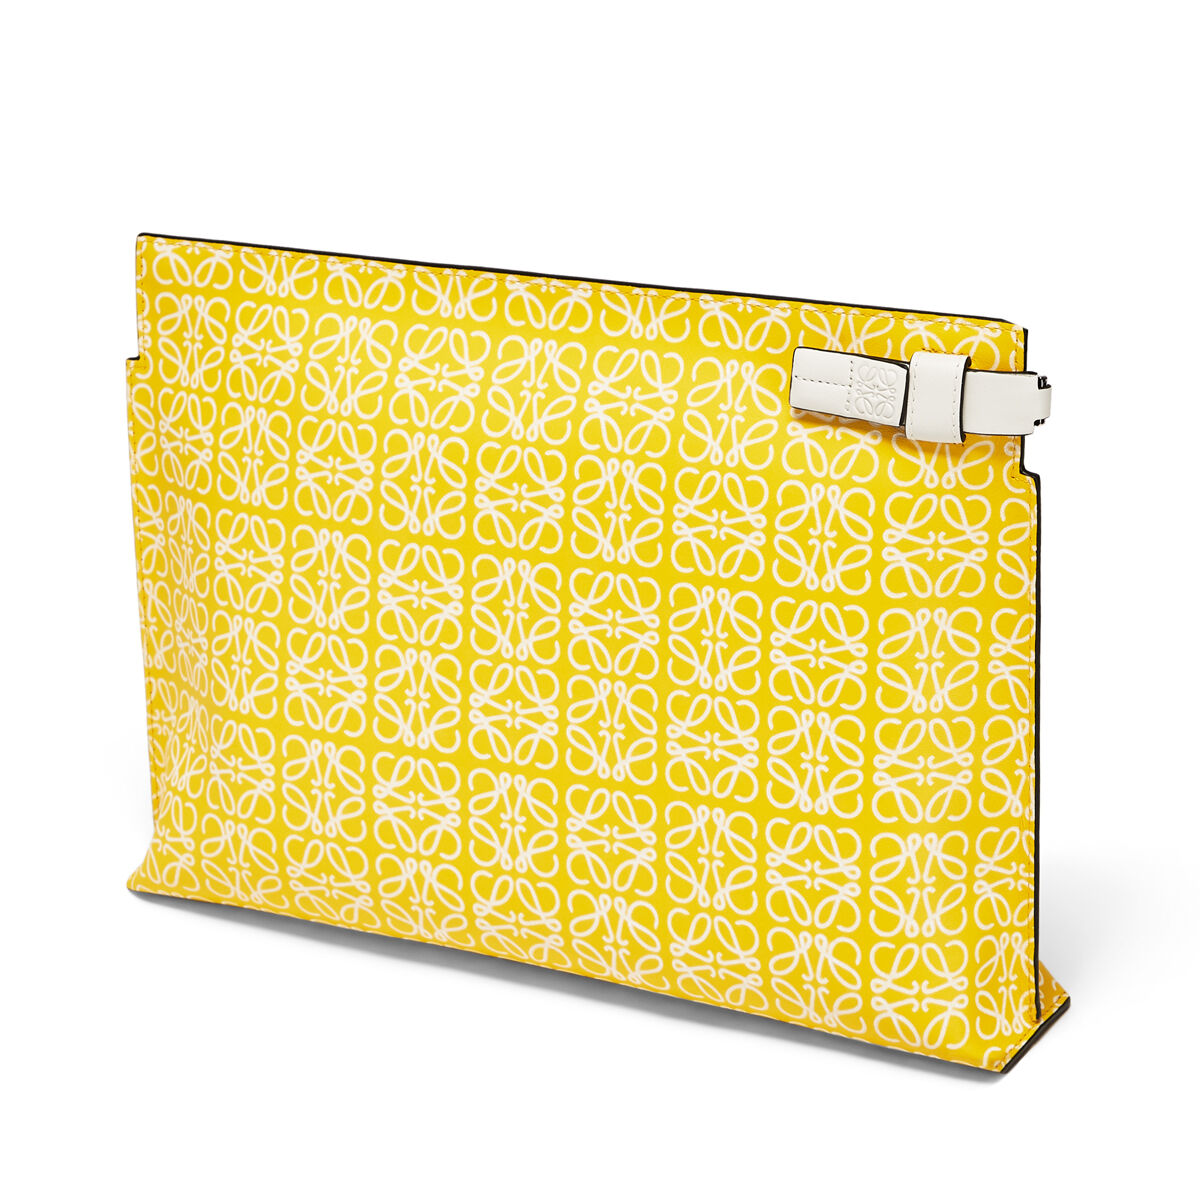 LOEWE T Pouch Repeat Yellow/White all